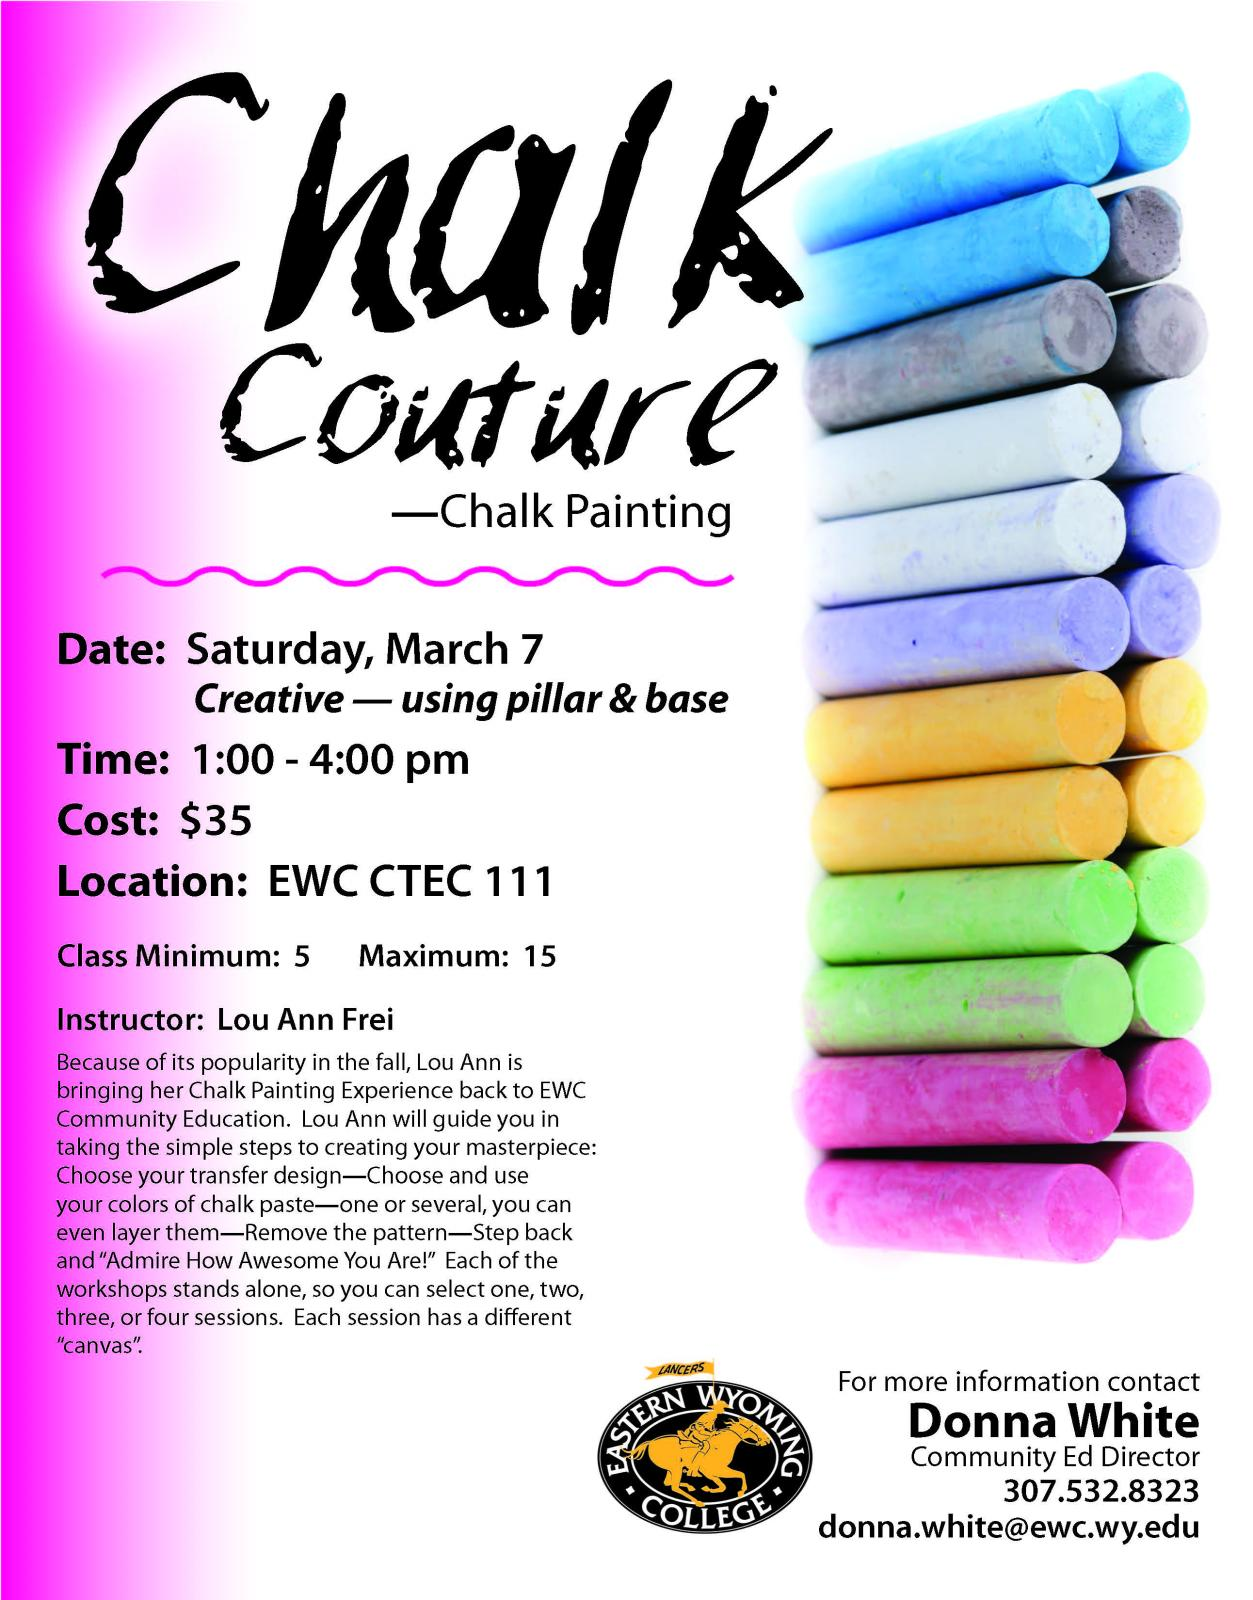 Chalk Couture - Chalk Painting Photo